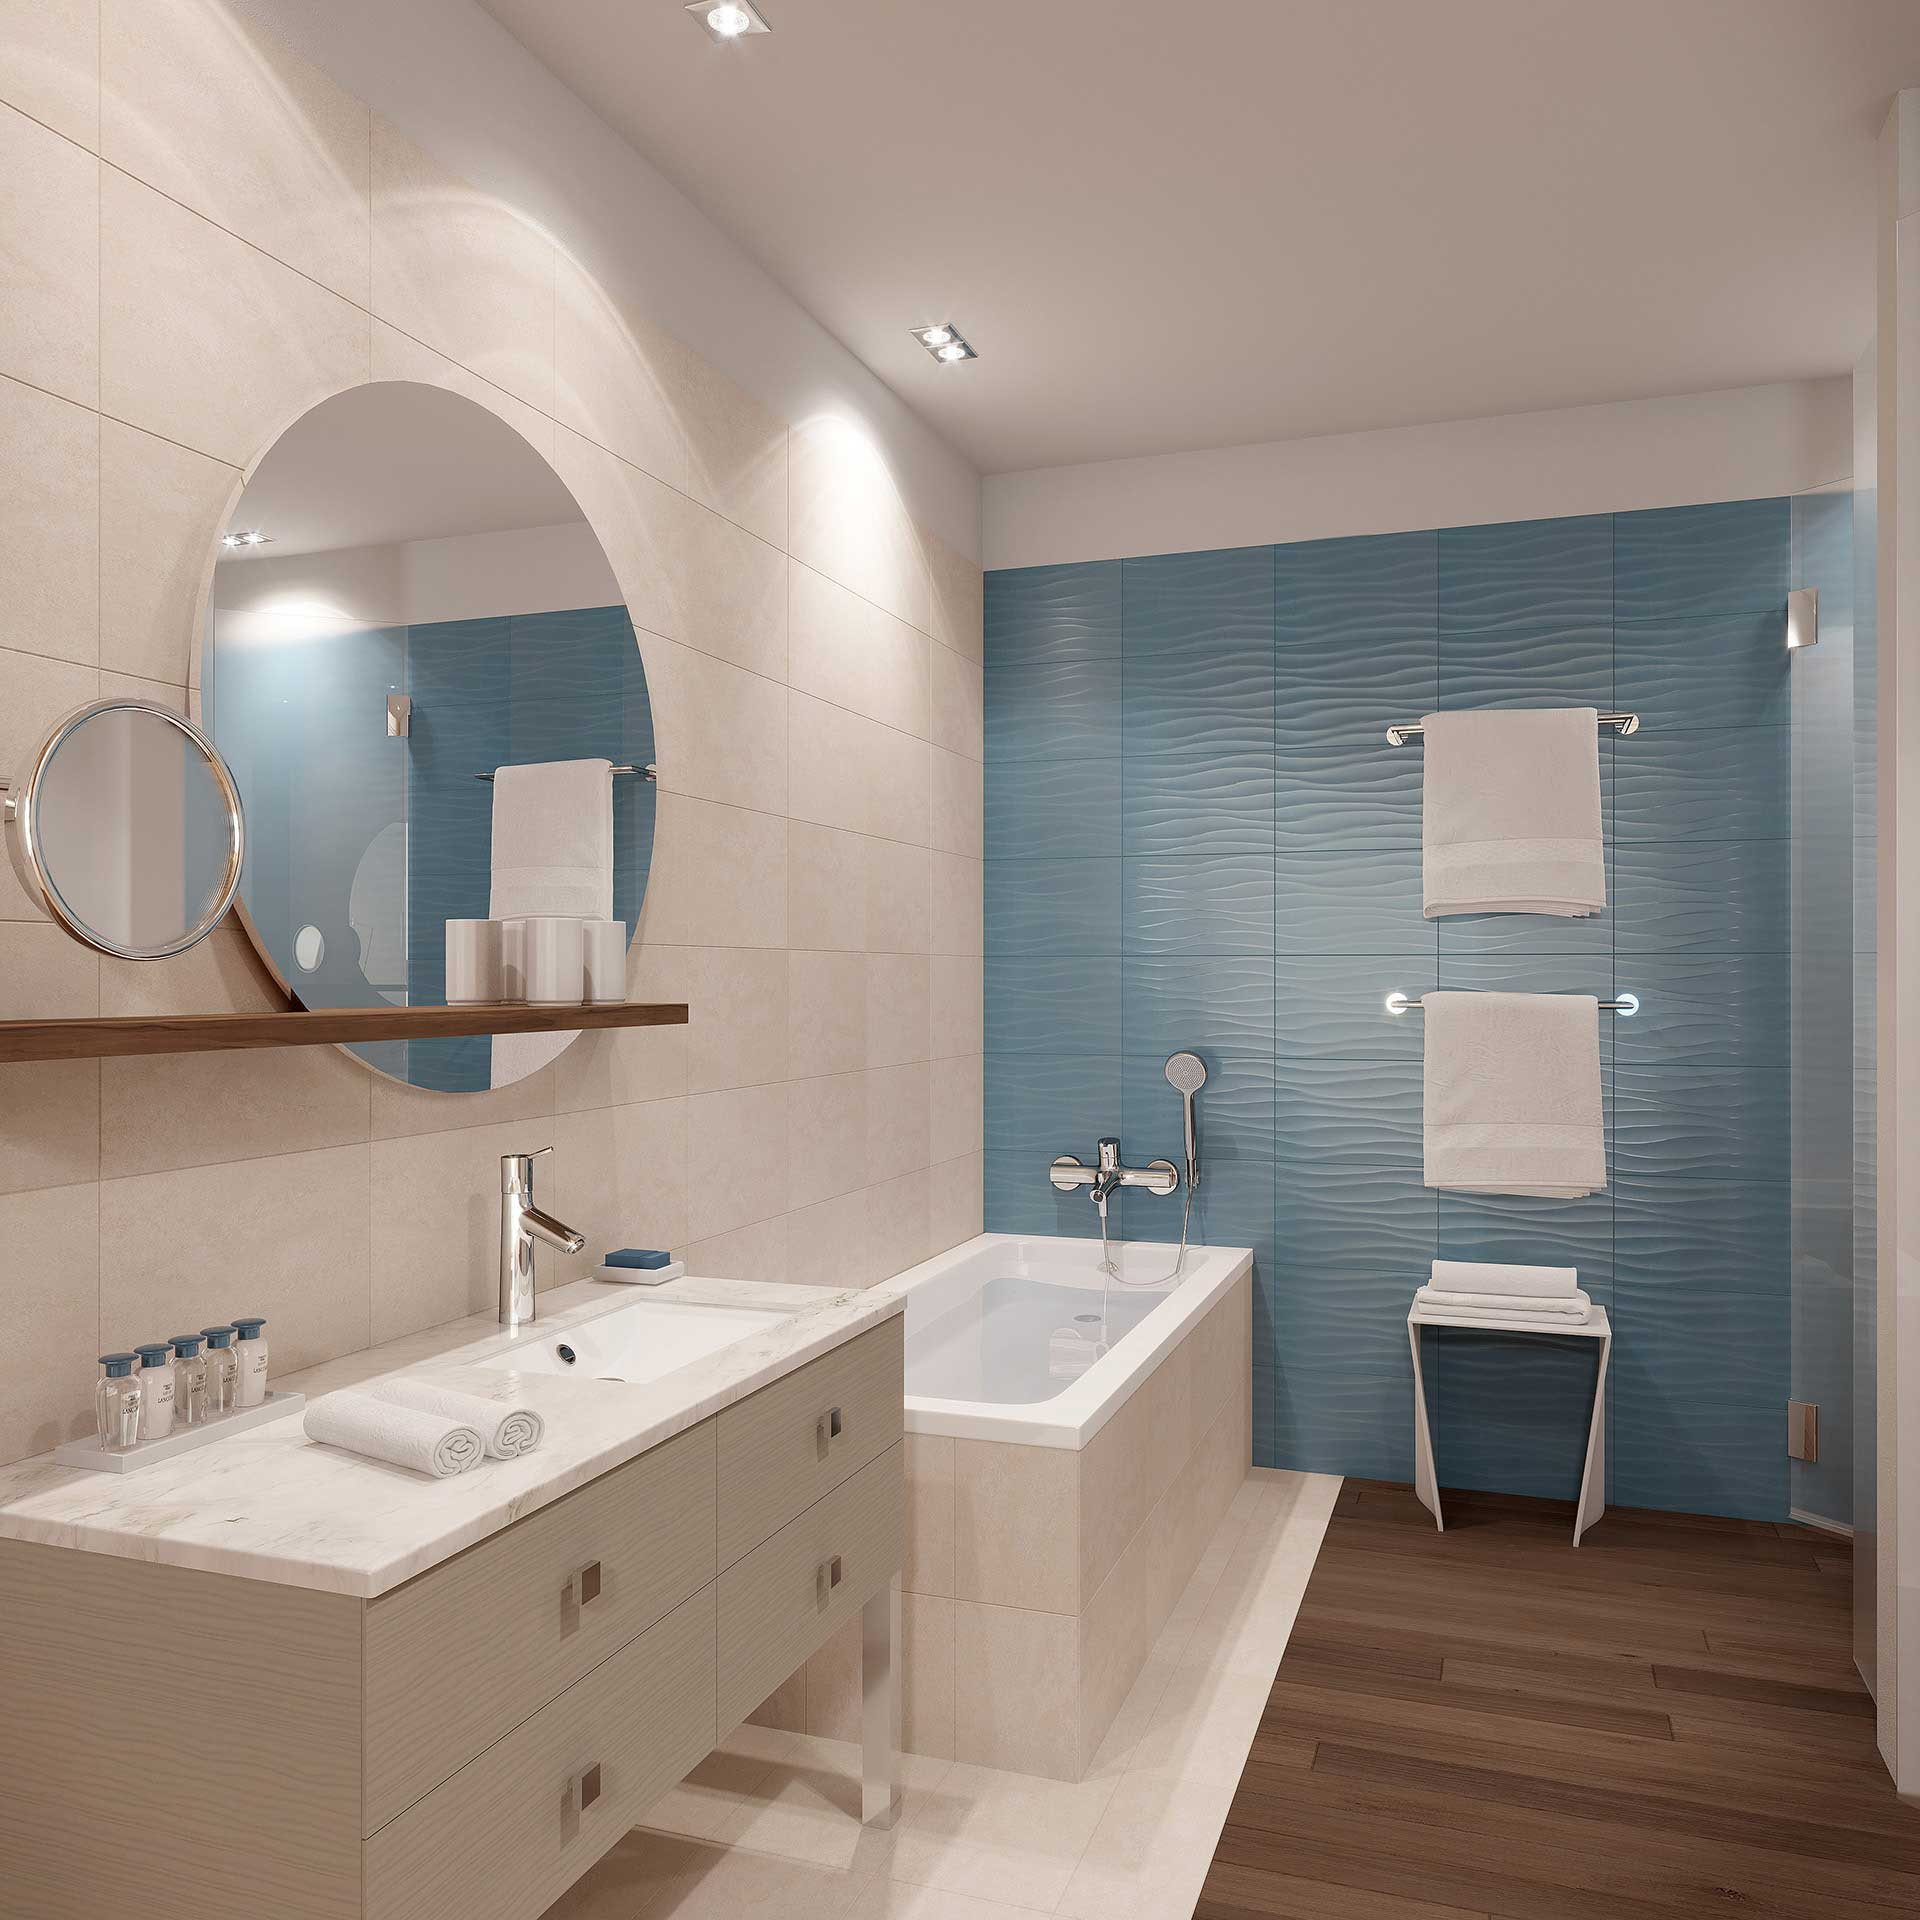 Photo of a 3D rendering of a bathroom created by Valentin Studio 3D.